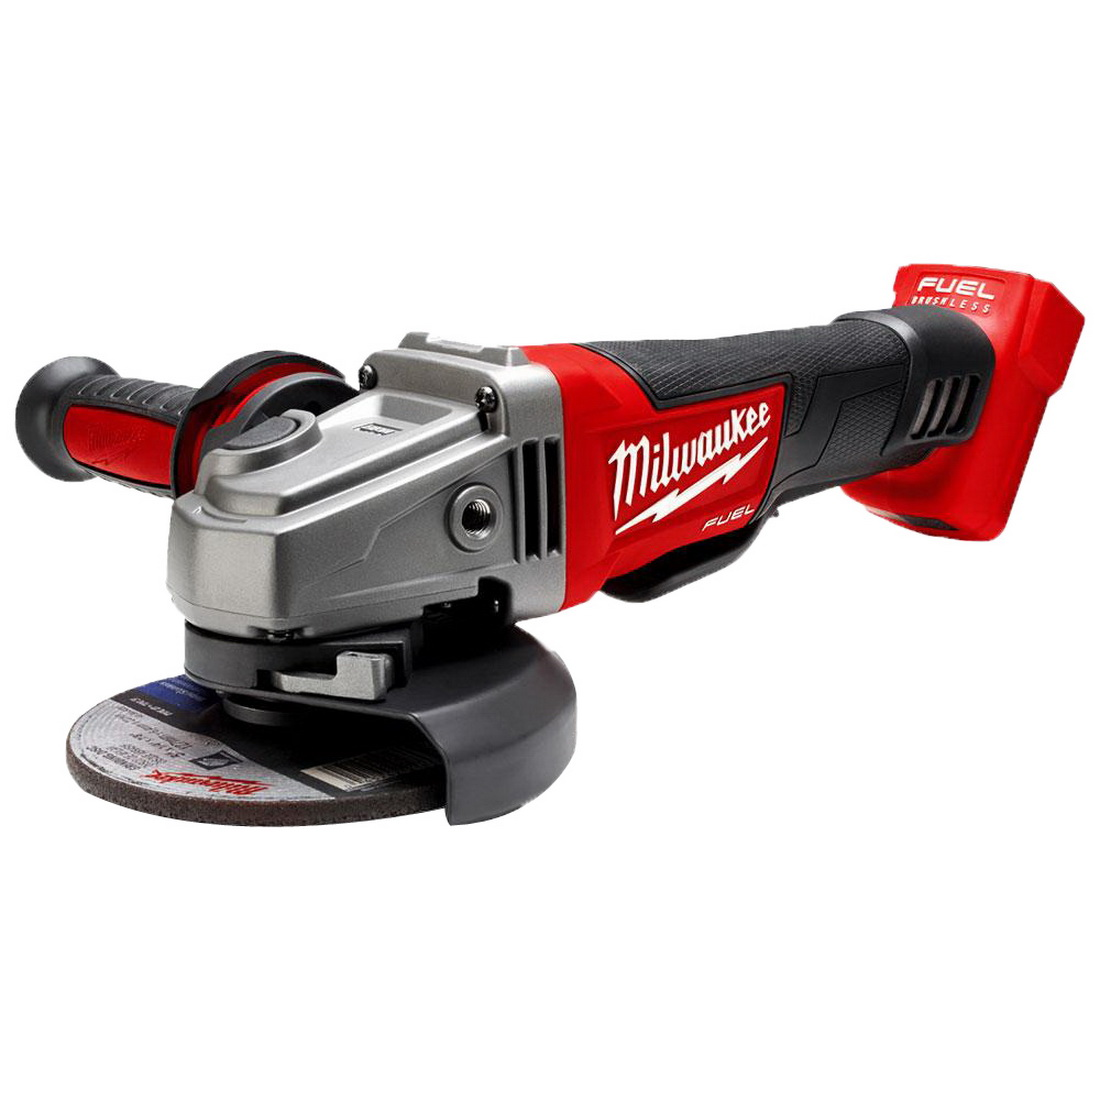 M18 FUEL Cordless Angle Grinder 125mm (Tool Only)